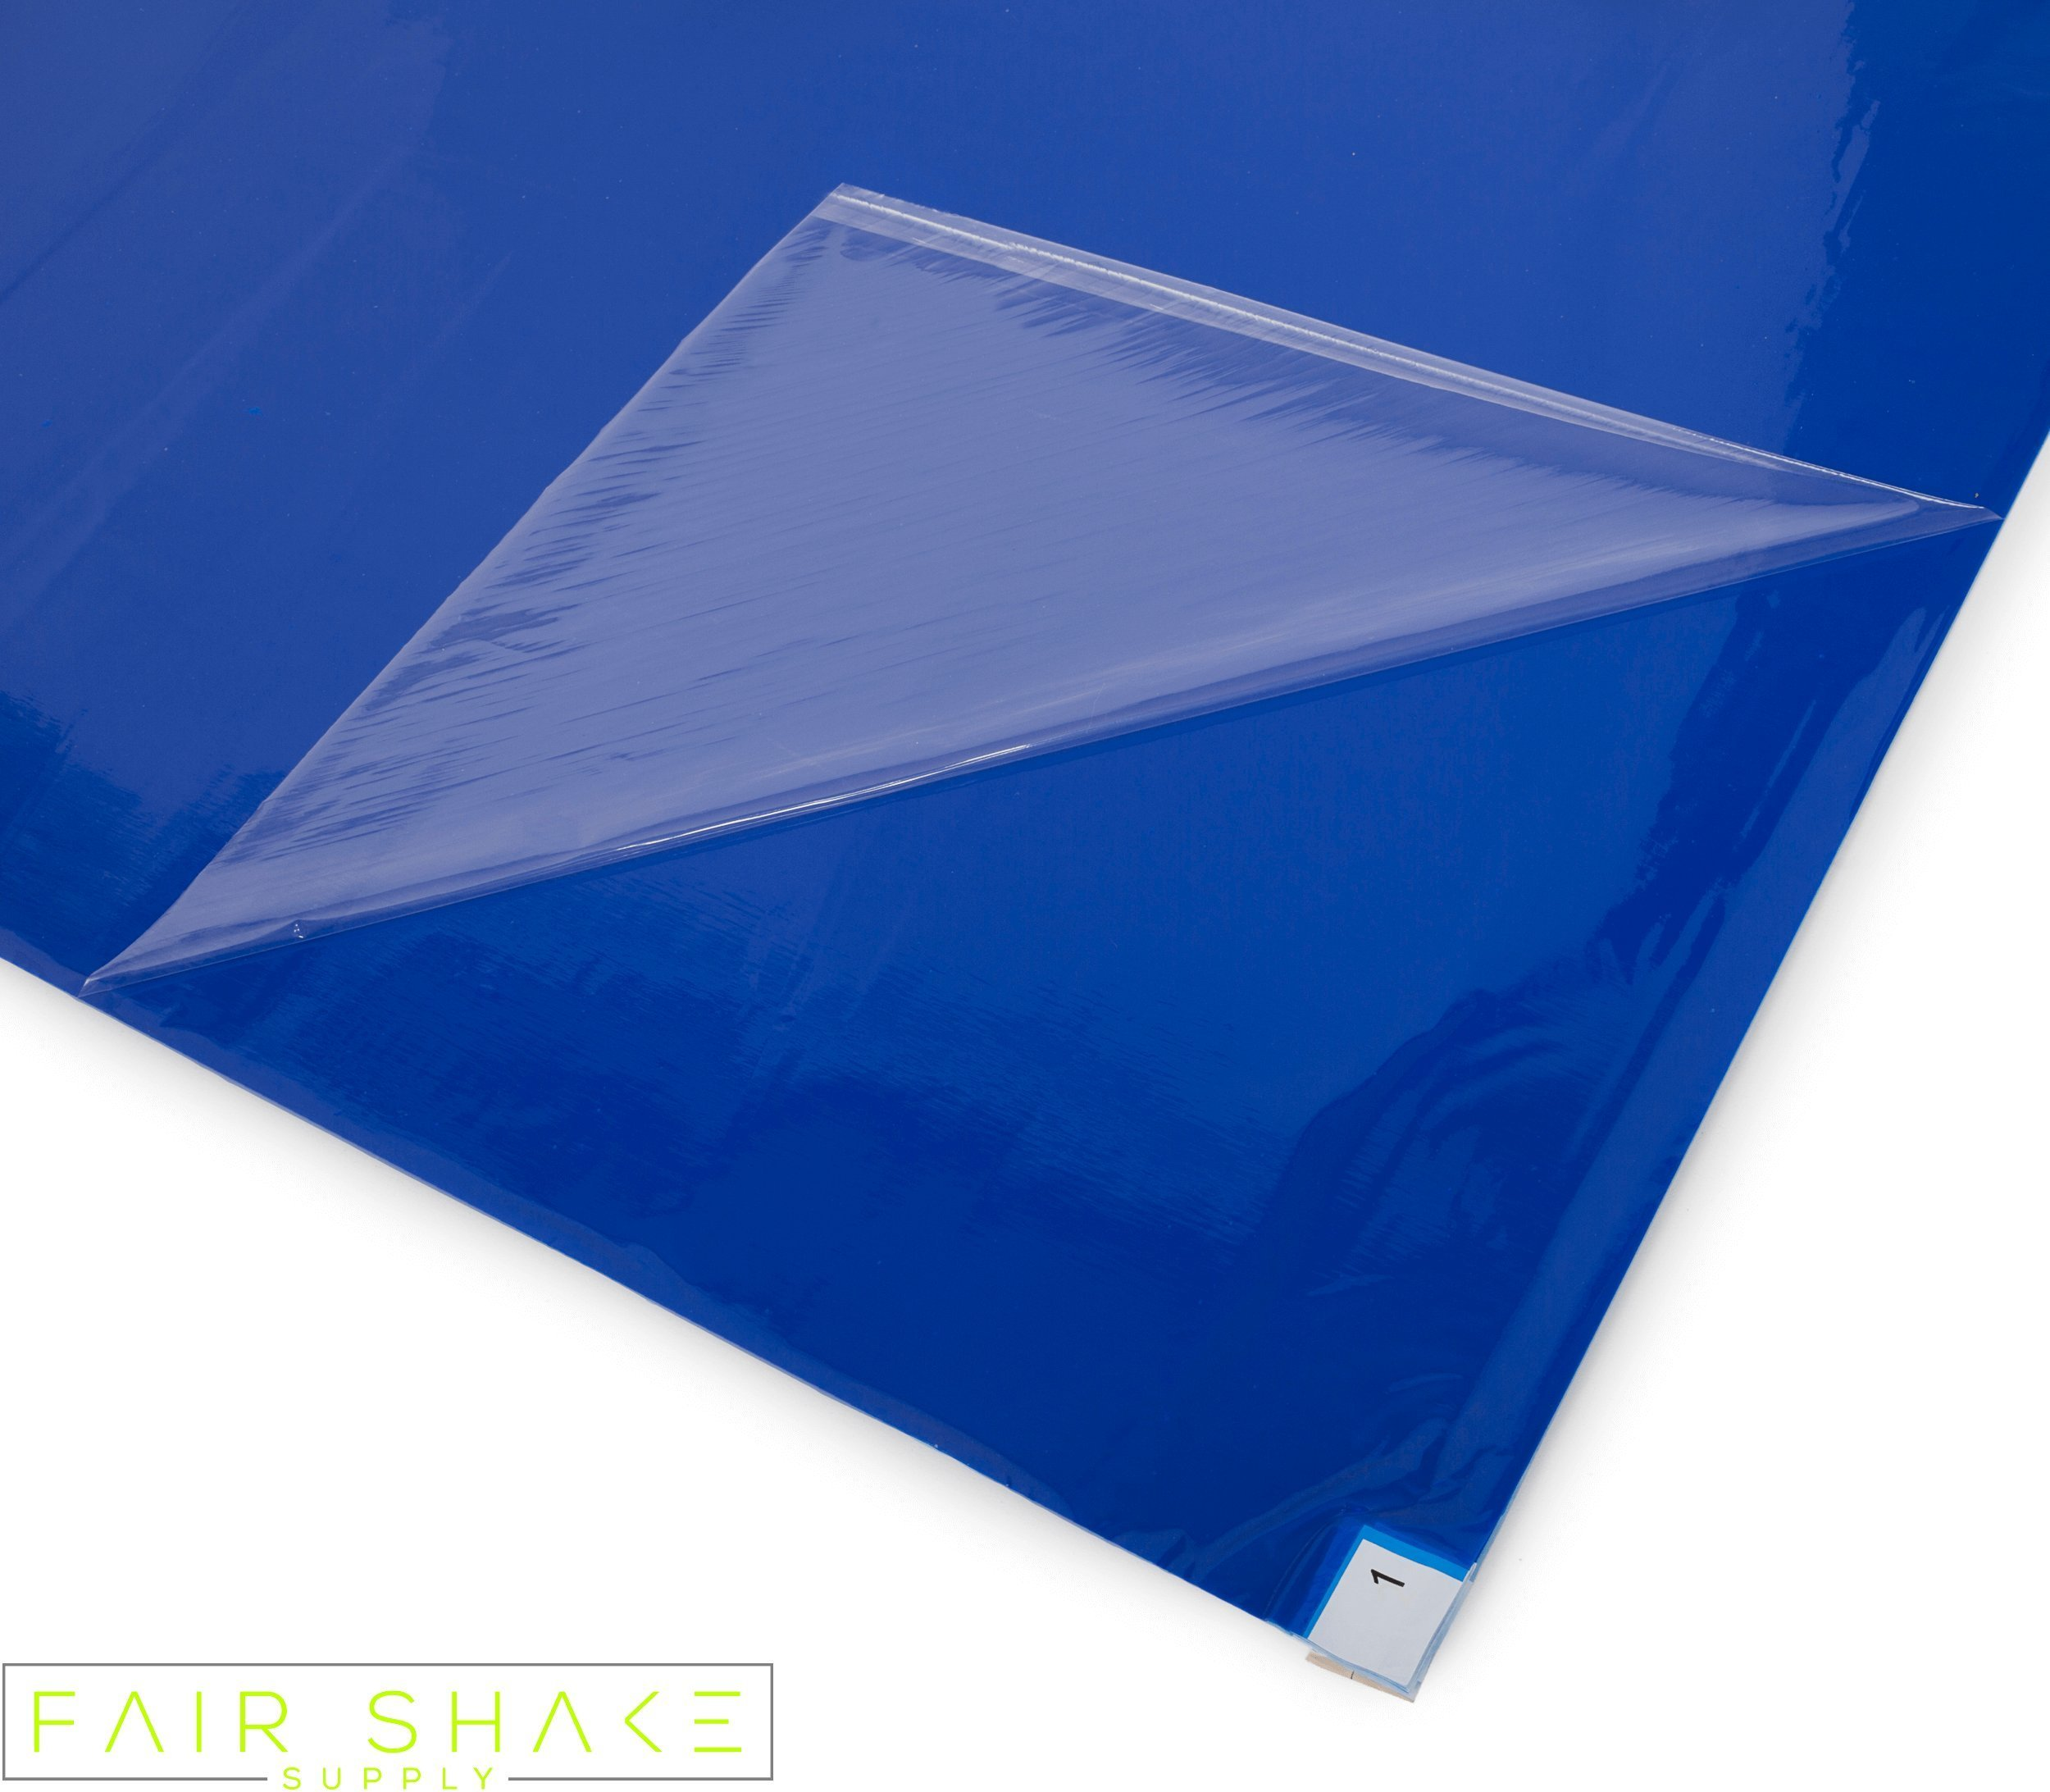 Sticky, Tacky Blue Floor Mats (4 Mats Included with 30 Sheets Each) for Renovations/Construction / Cleanrooms with Quality Adhesive Properties